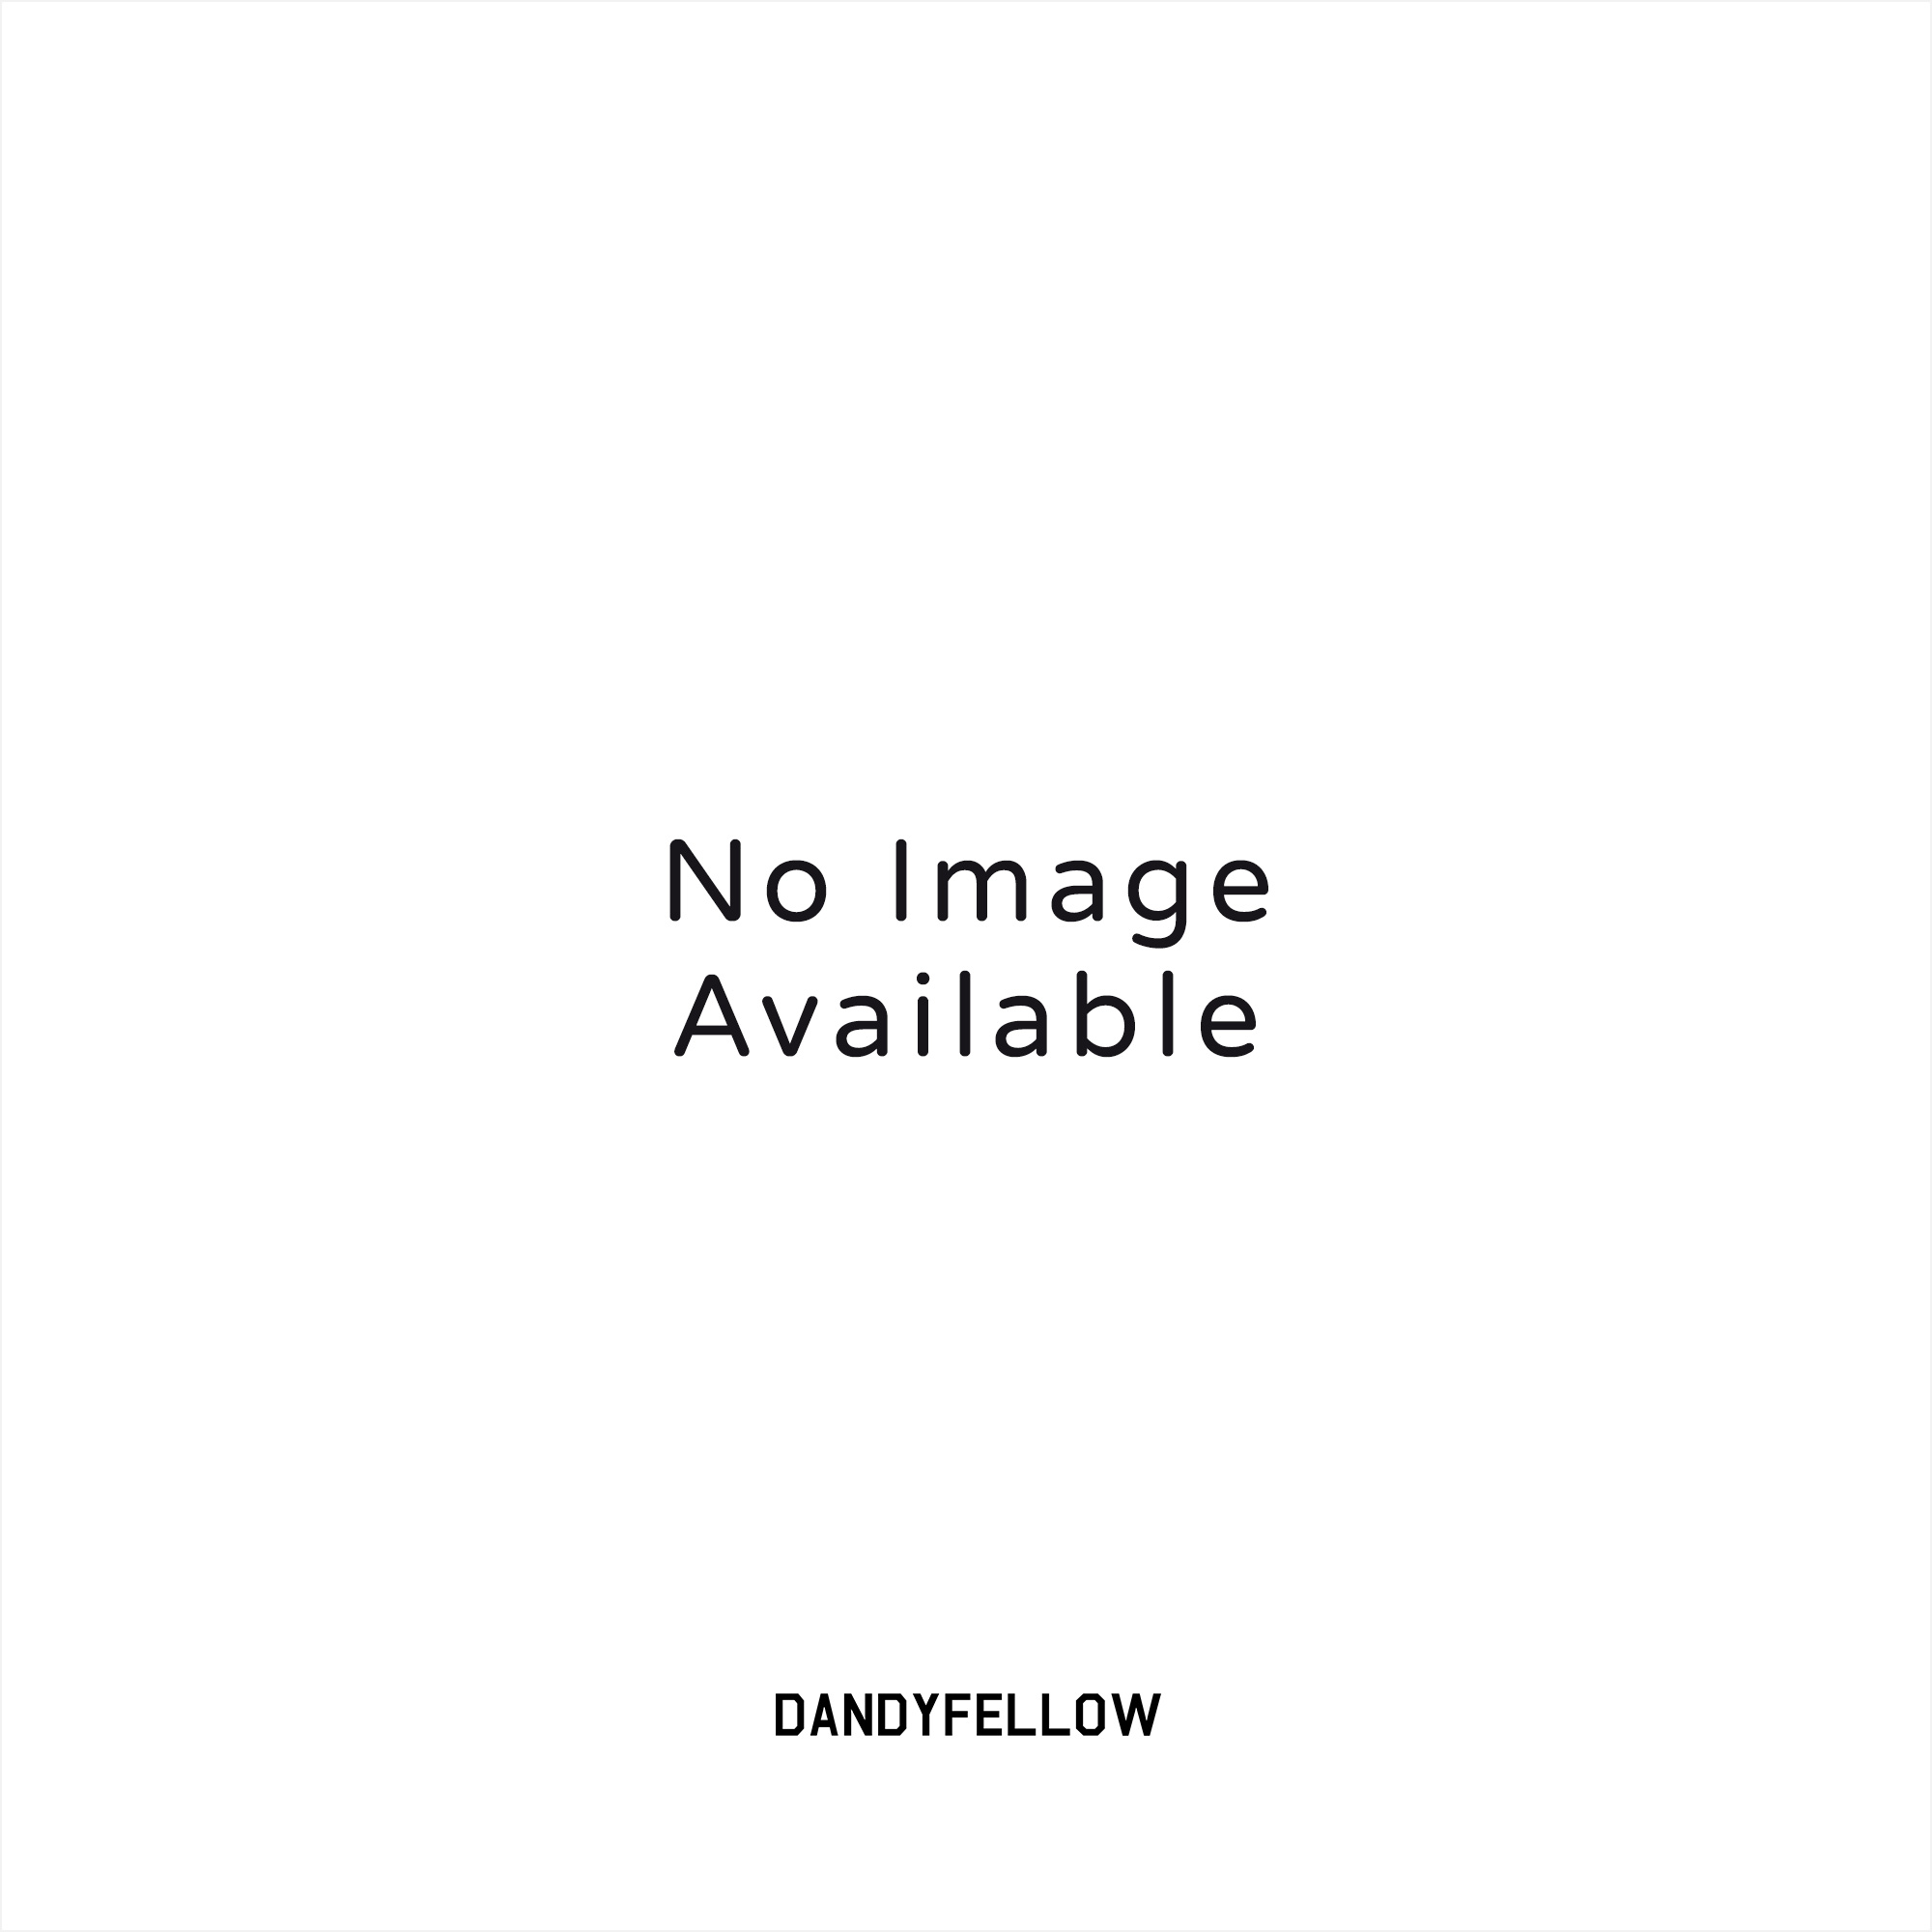 Burlington King Navy Argyle Socks 21020 6122